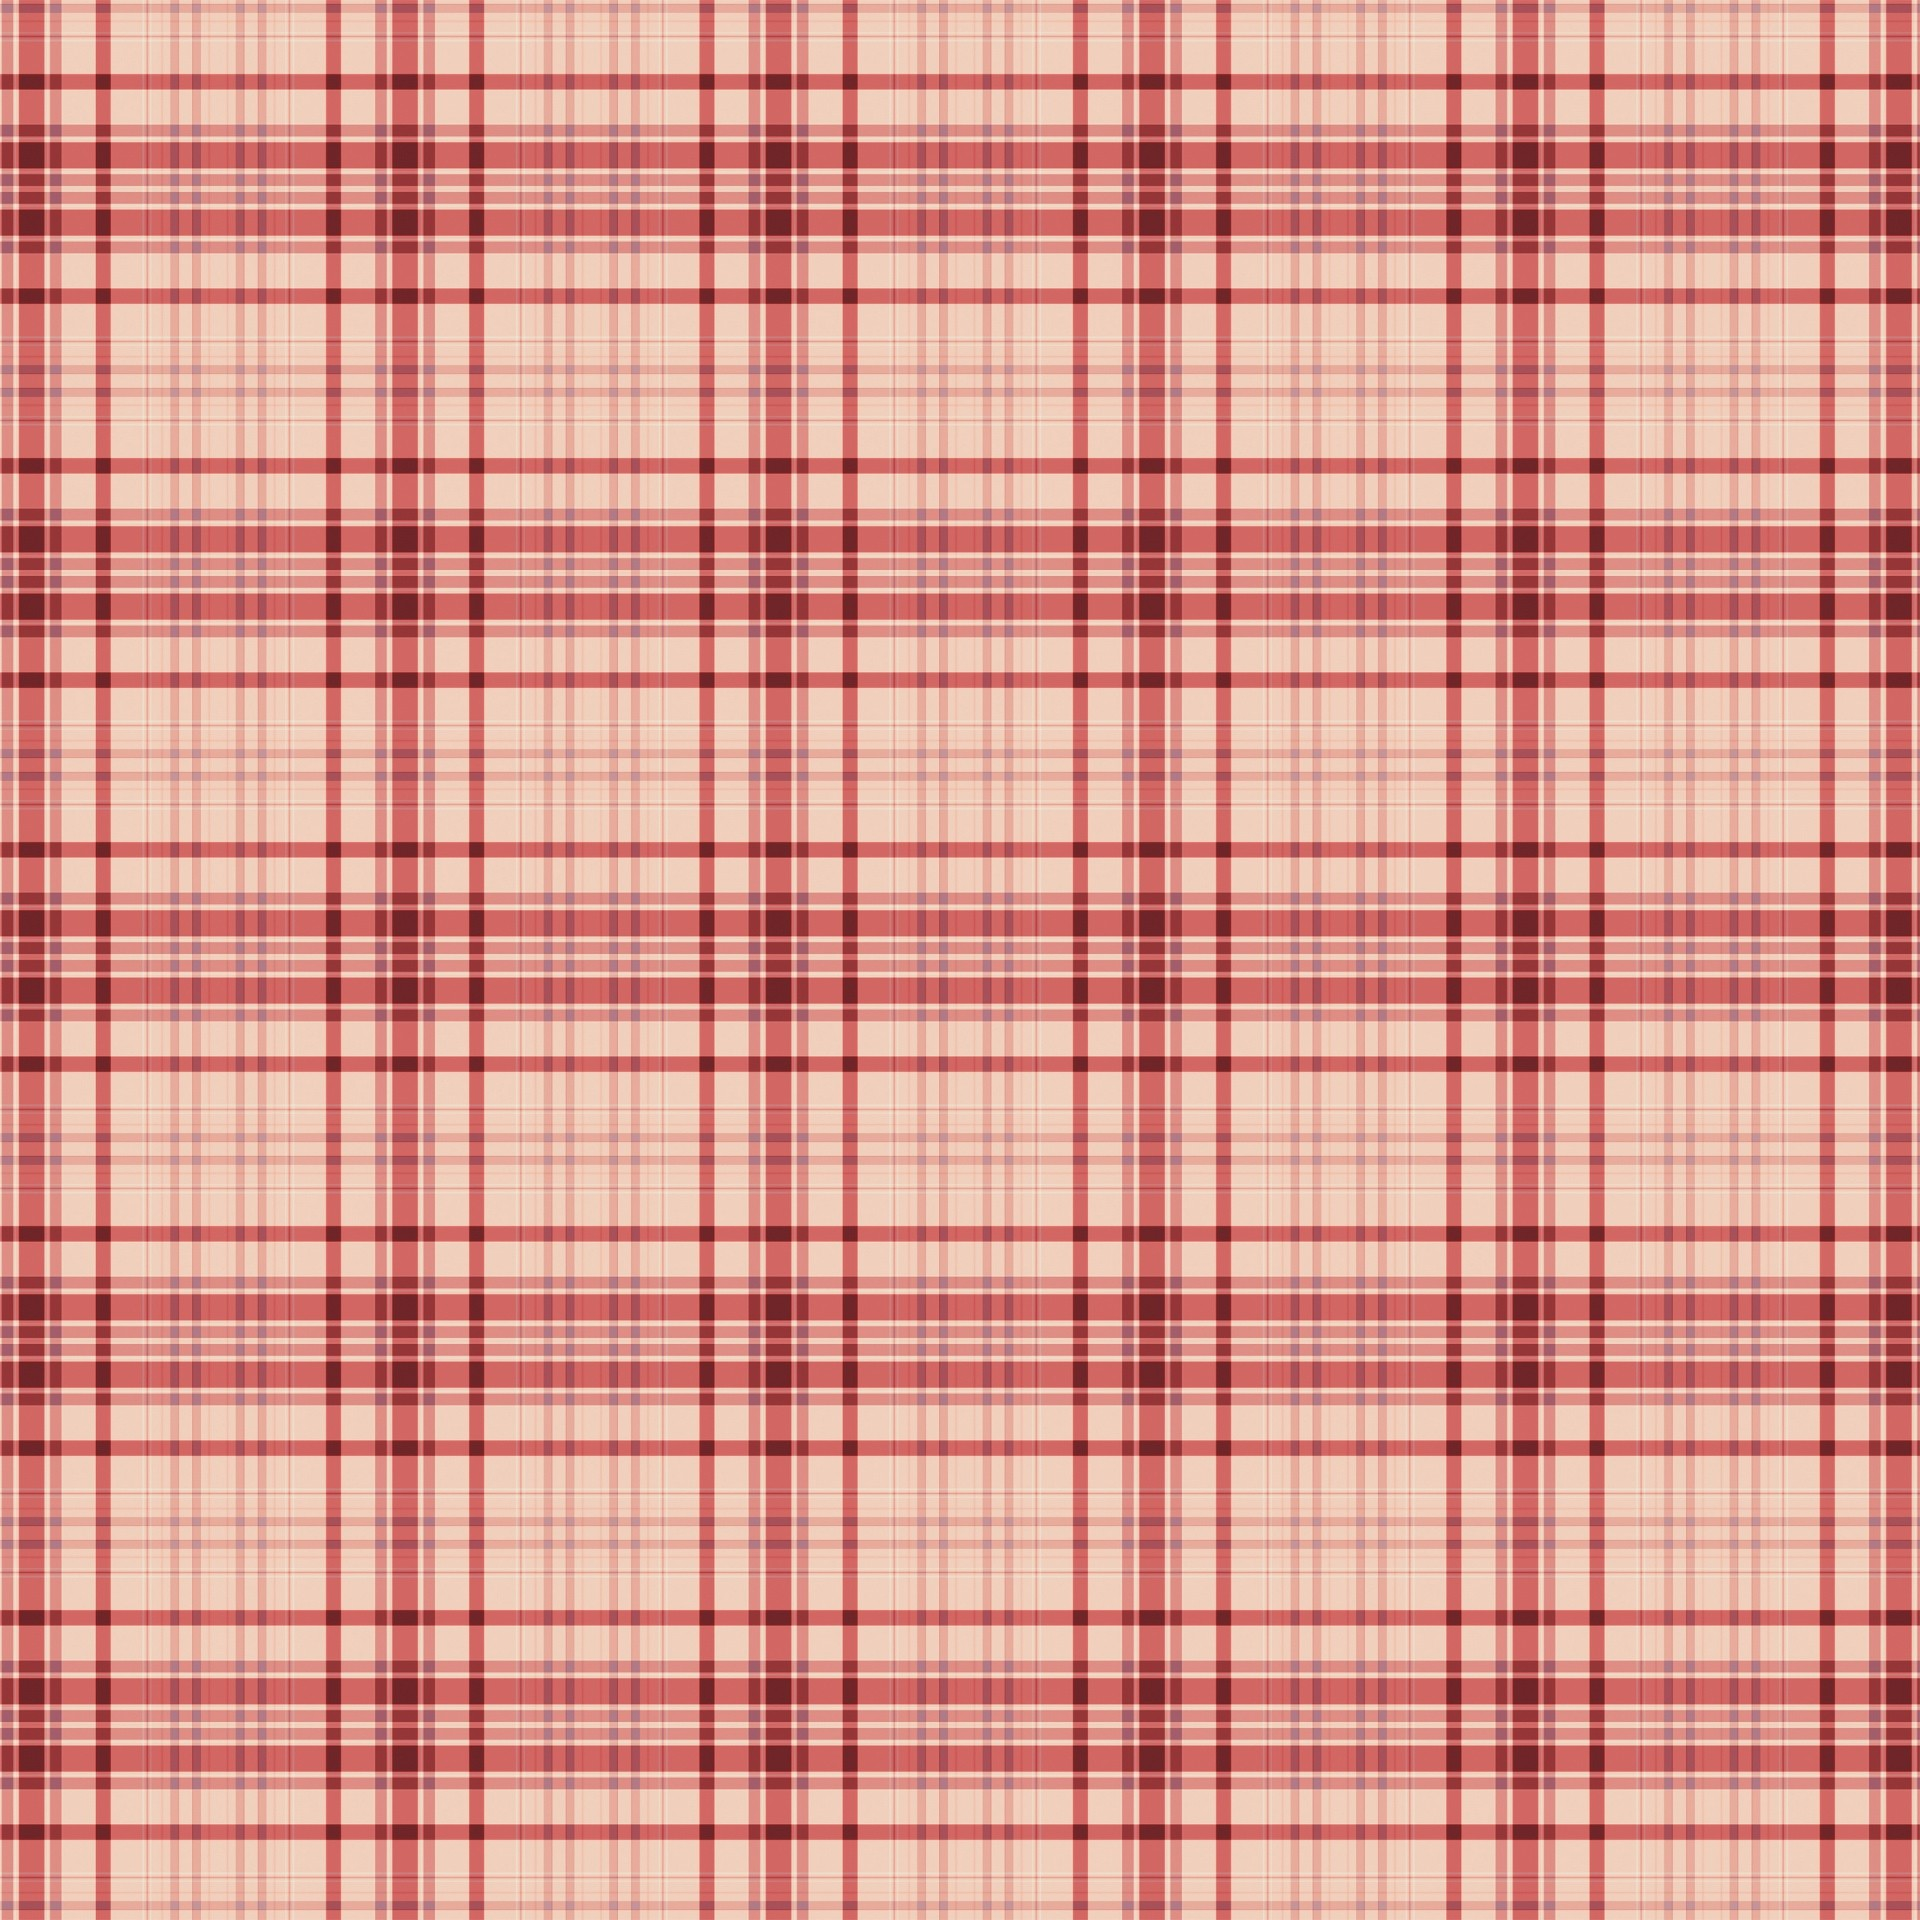 Checkered Wallpaper: Plaid Background ·① Download Free Stunning Backgrounds For